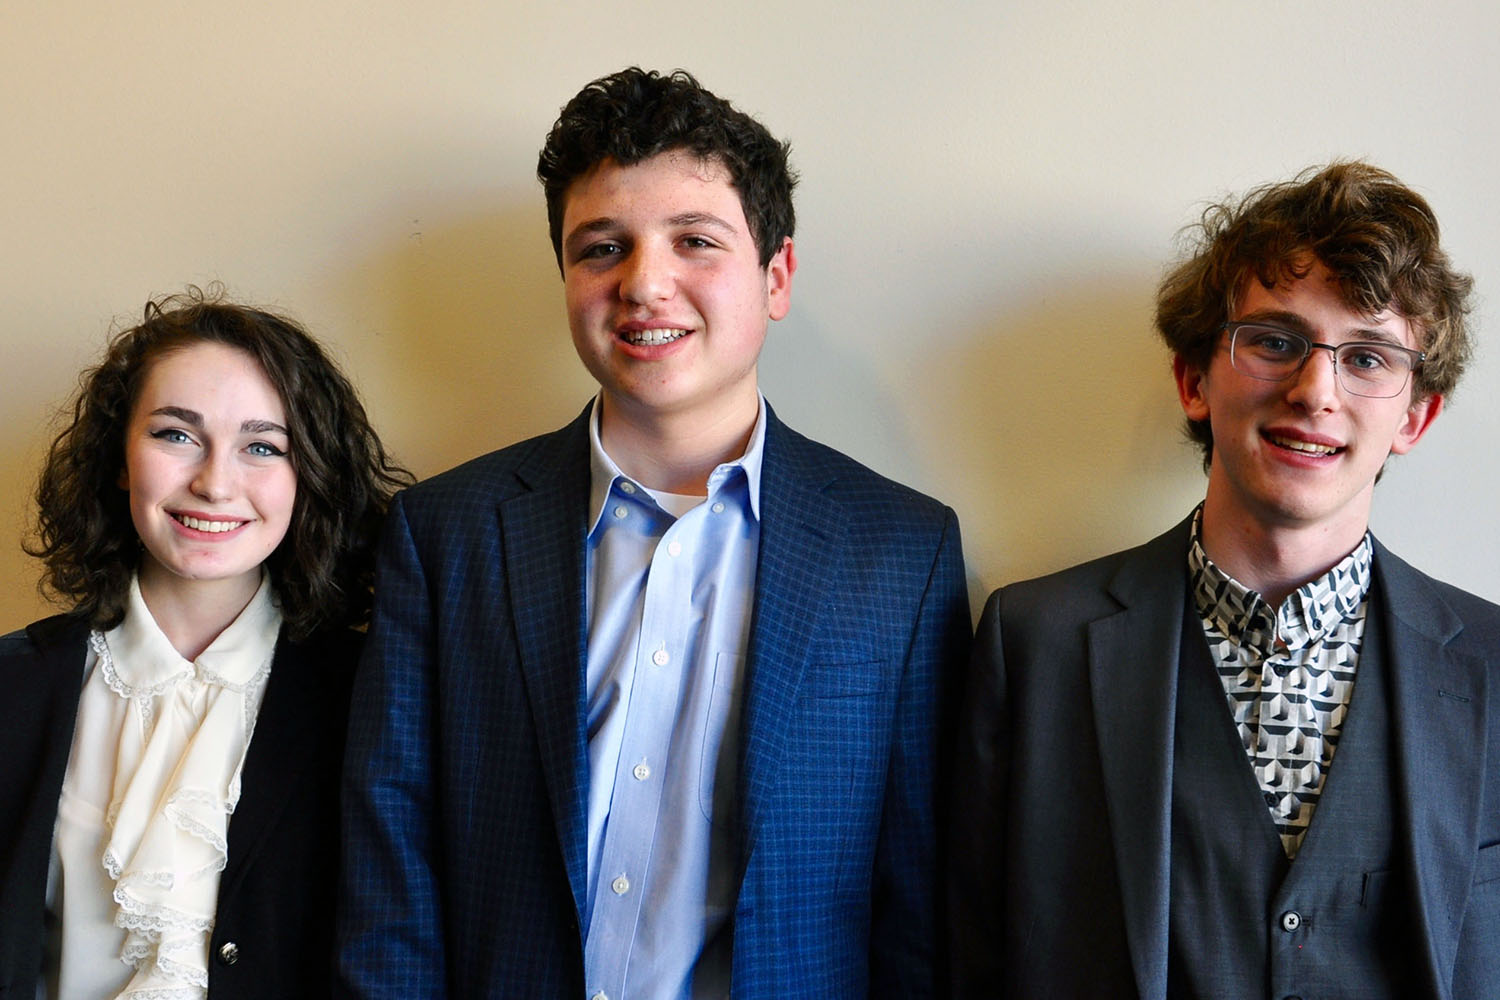 Red Hook High School students Emily Shein, Doug Appenzeller, and Joe Becker after their debate on climate change policy.